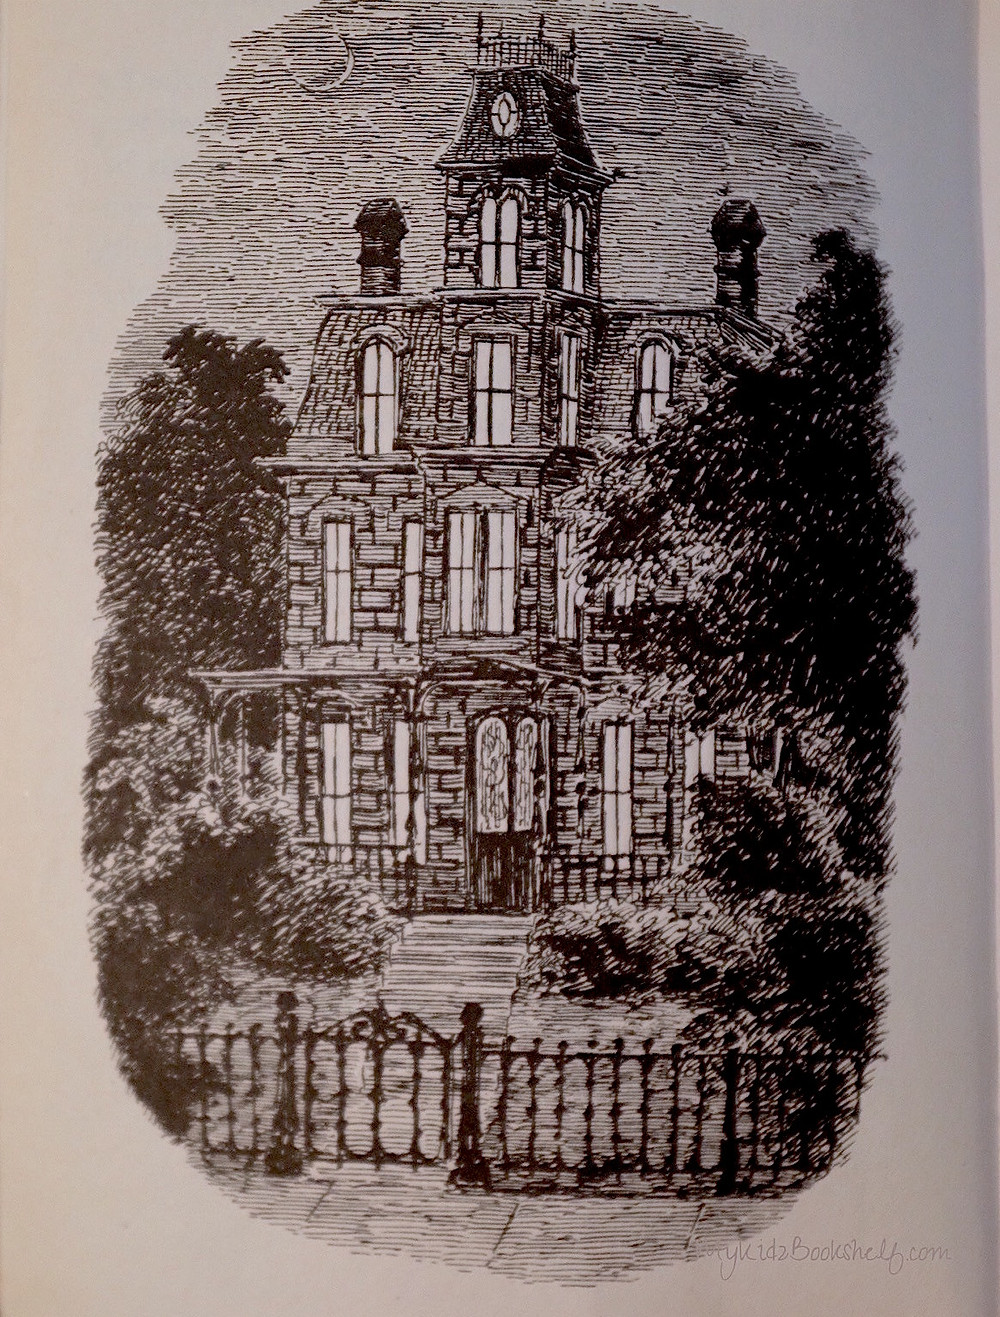 The-House-With-A-Clock-in-its-Walls inside illustration of the house